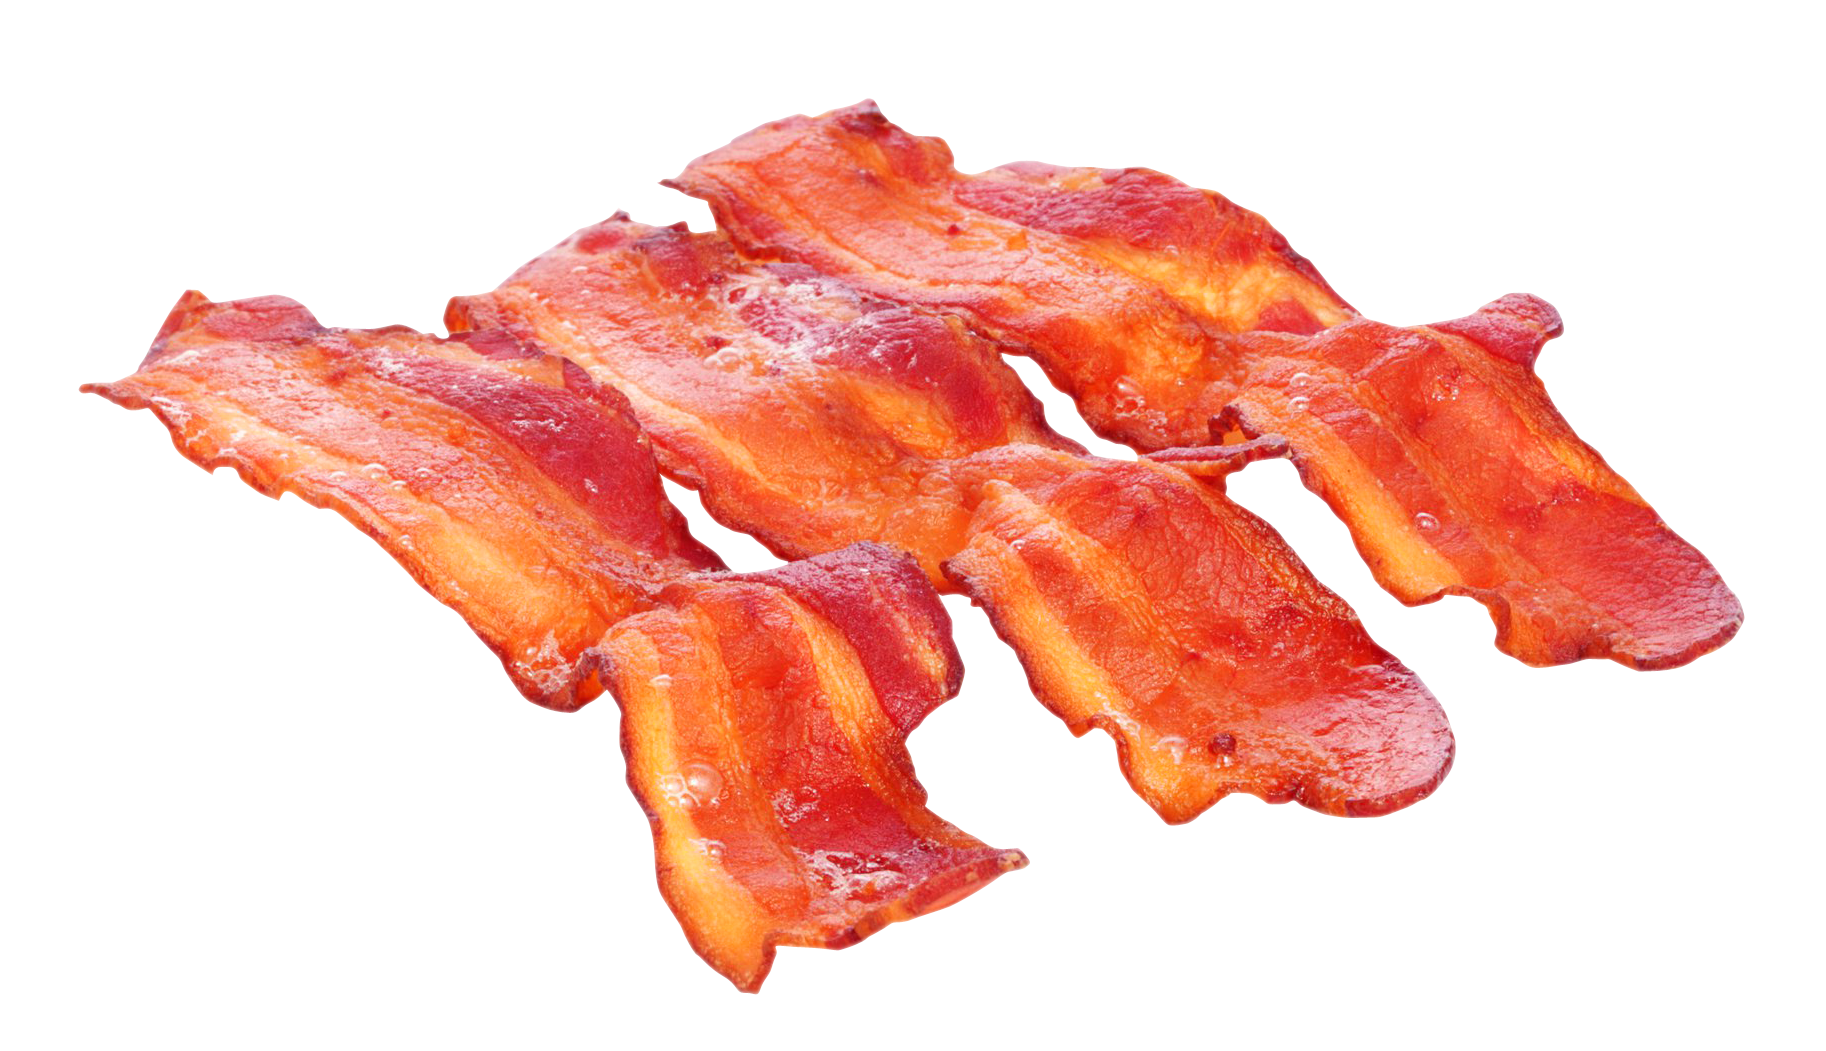 Png image purepng free. Food clipart bacon